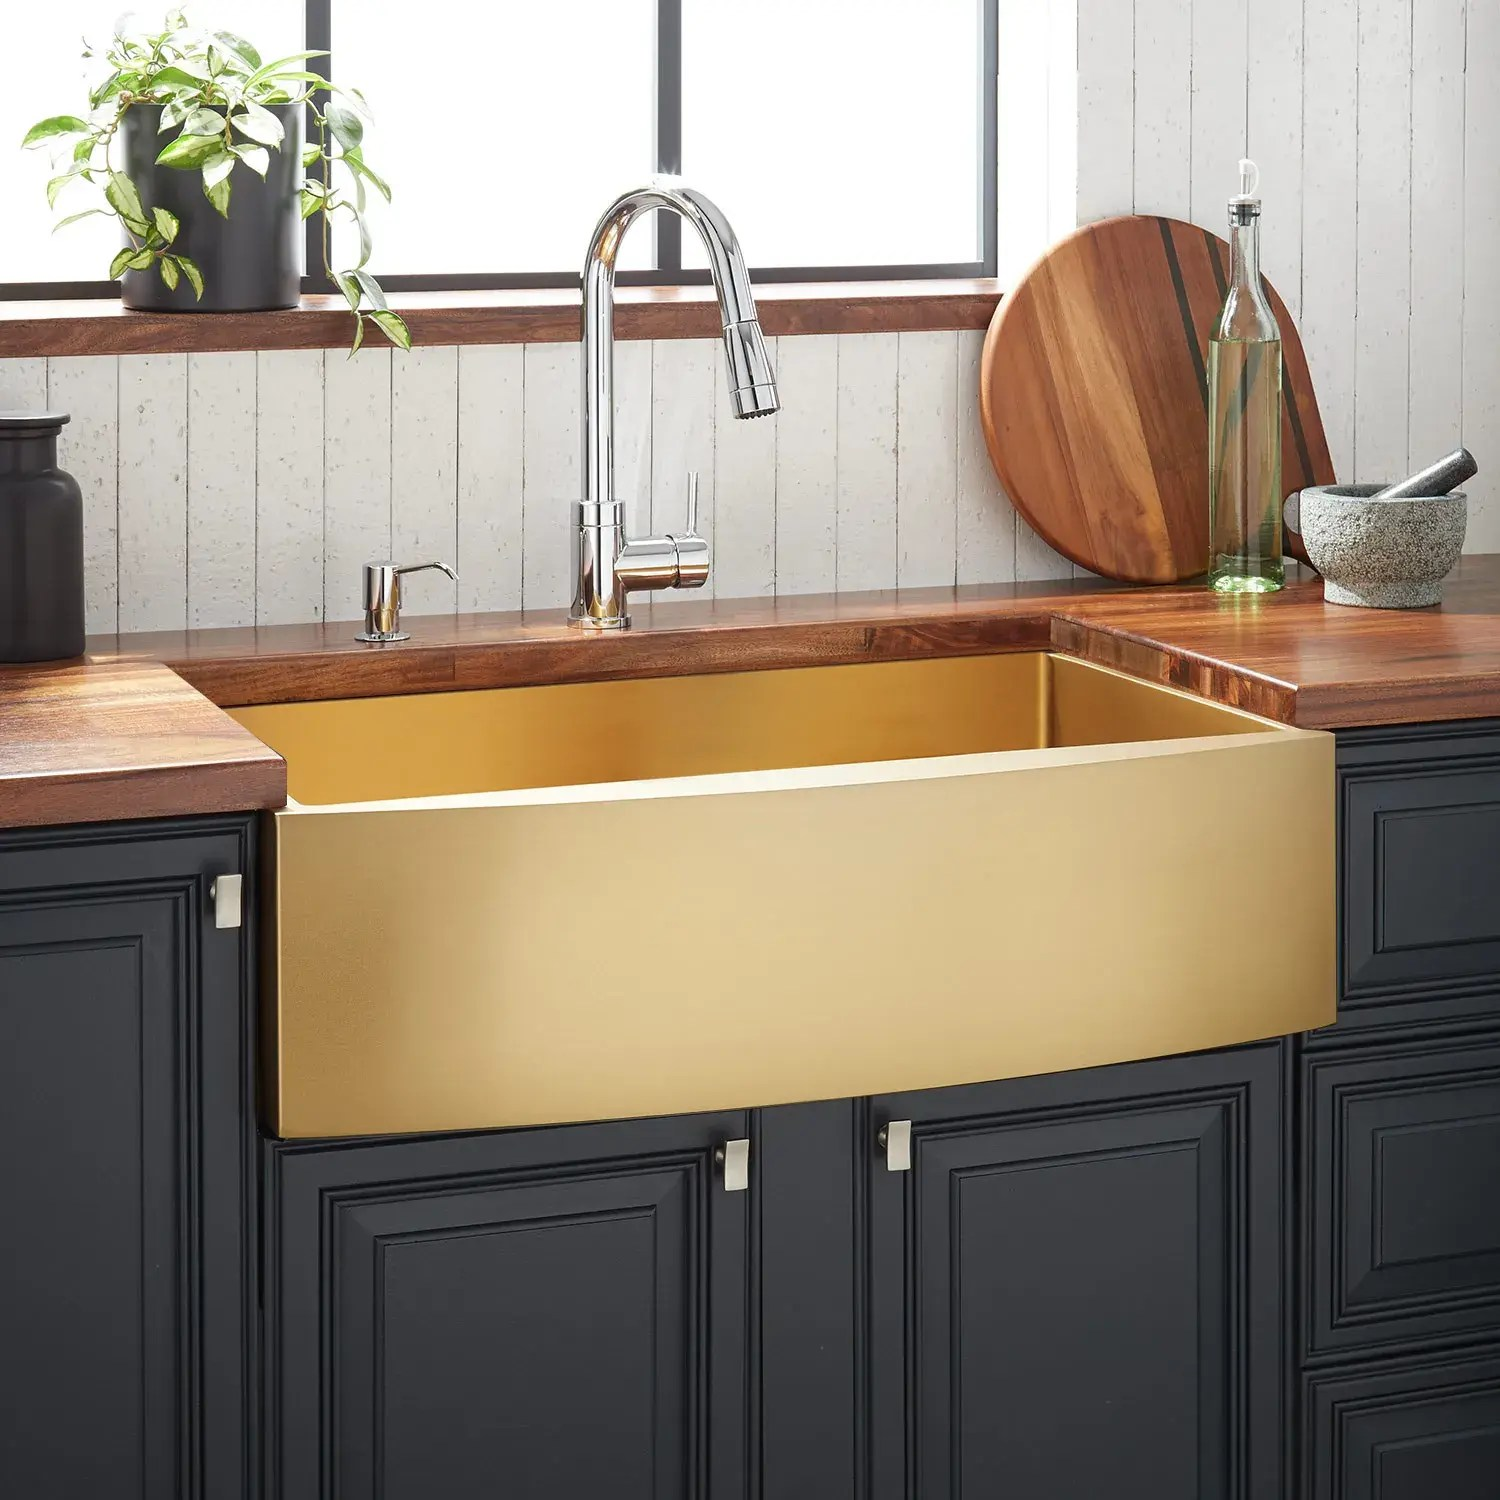 36 atlas stainless steel farmhouse sink curved apron matte gold